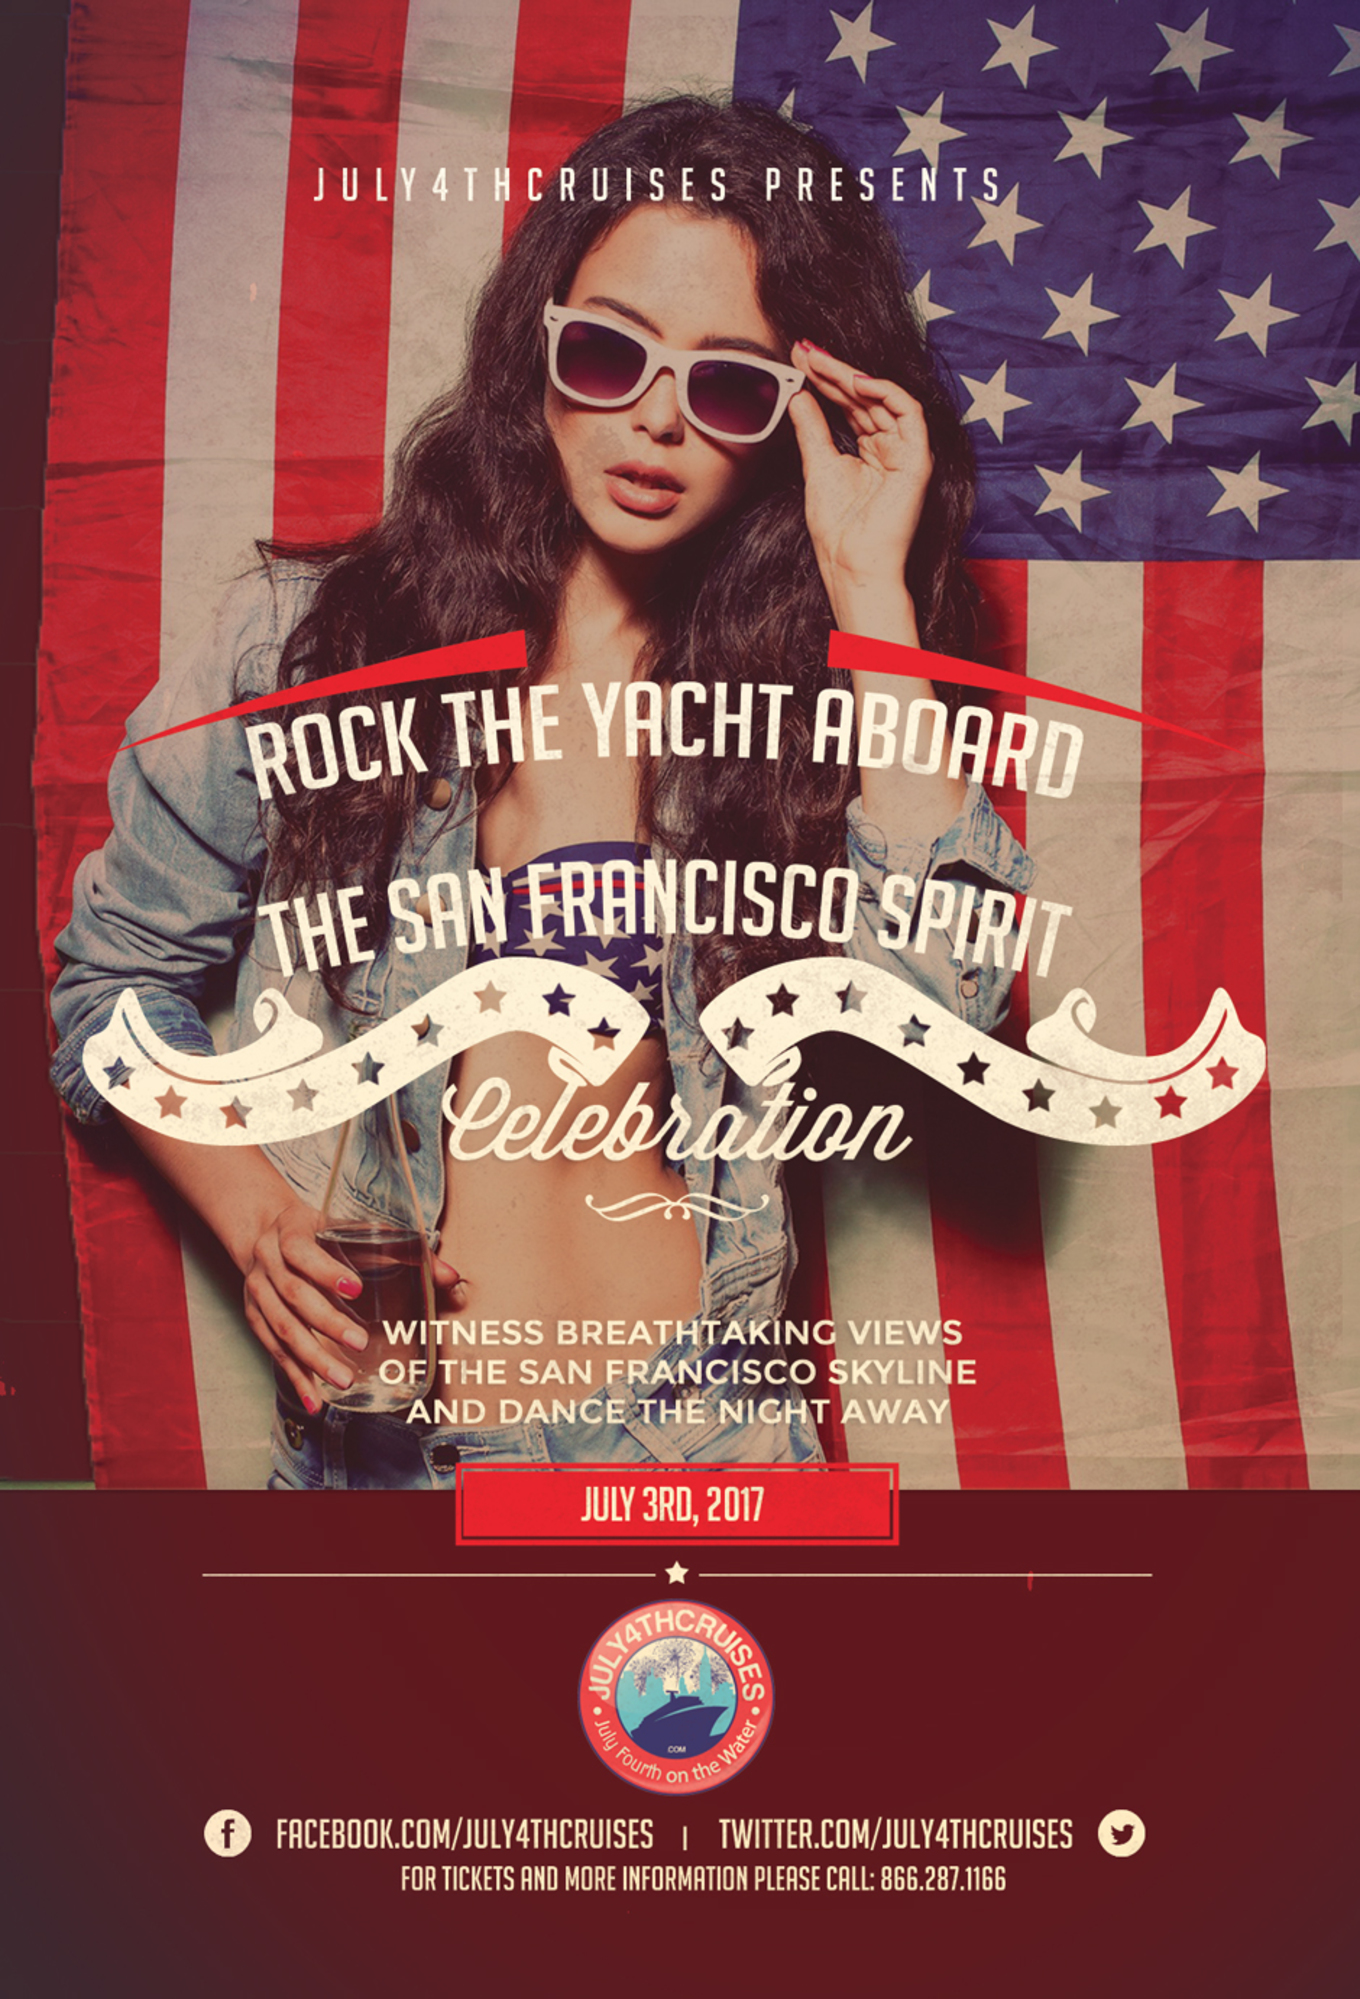 Rock the Yacht Pre July 4th Yacht Party Aboard the San Francisco ...